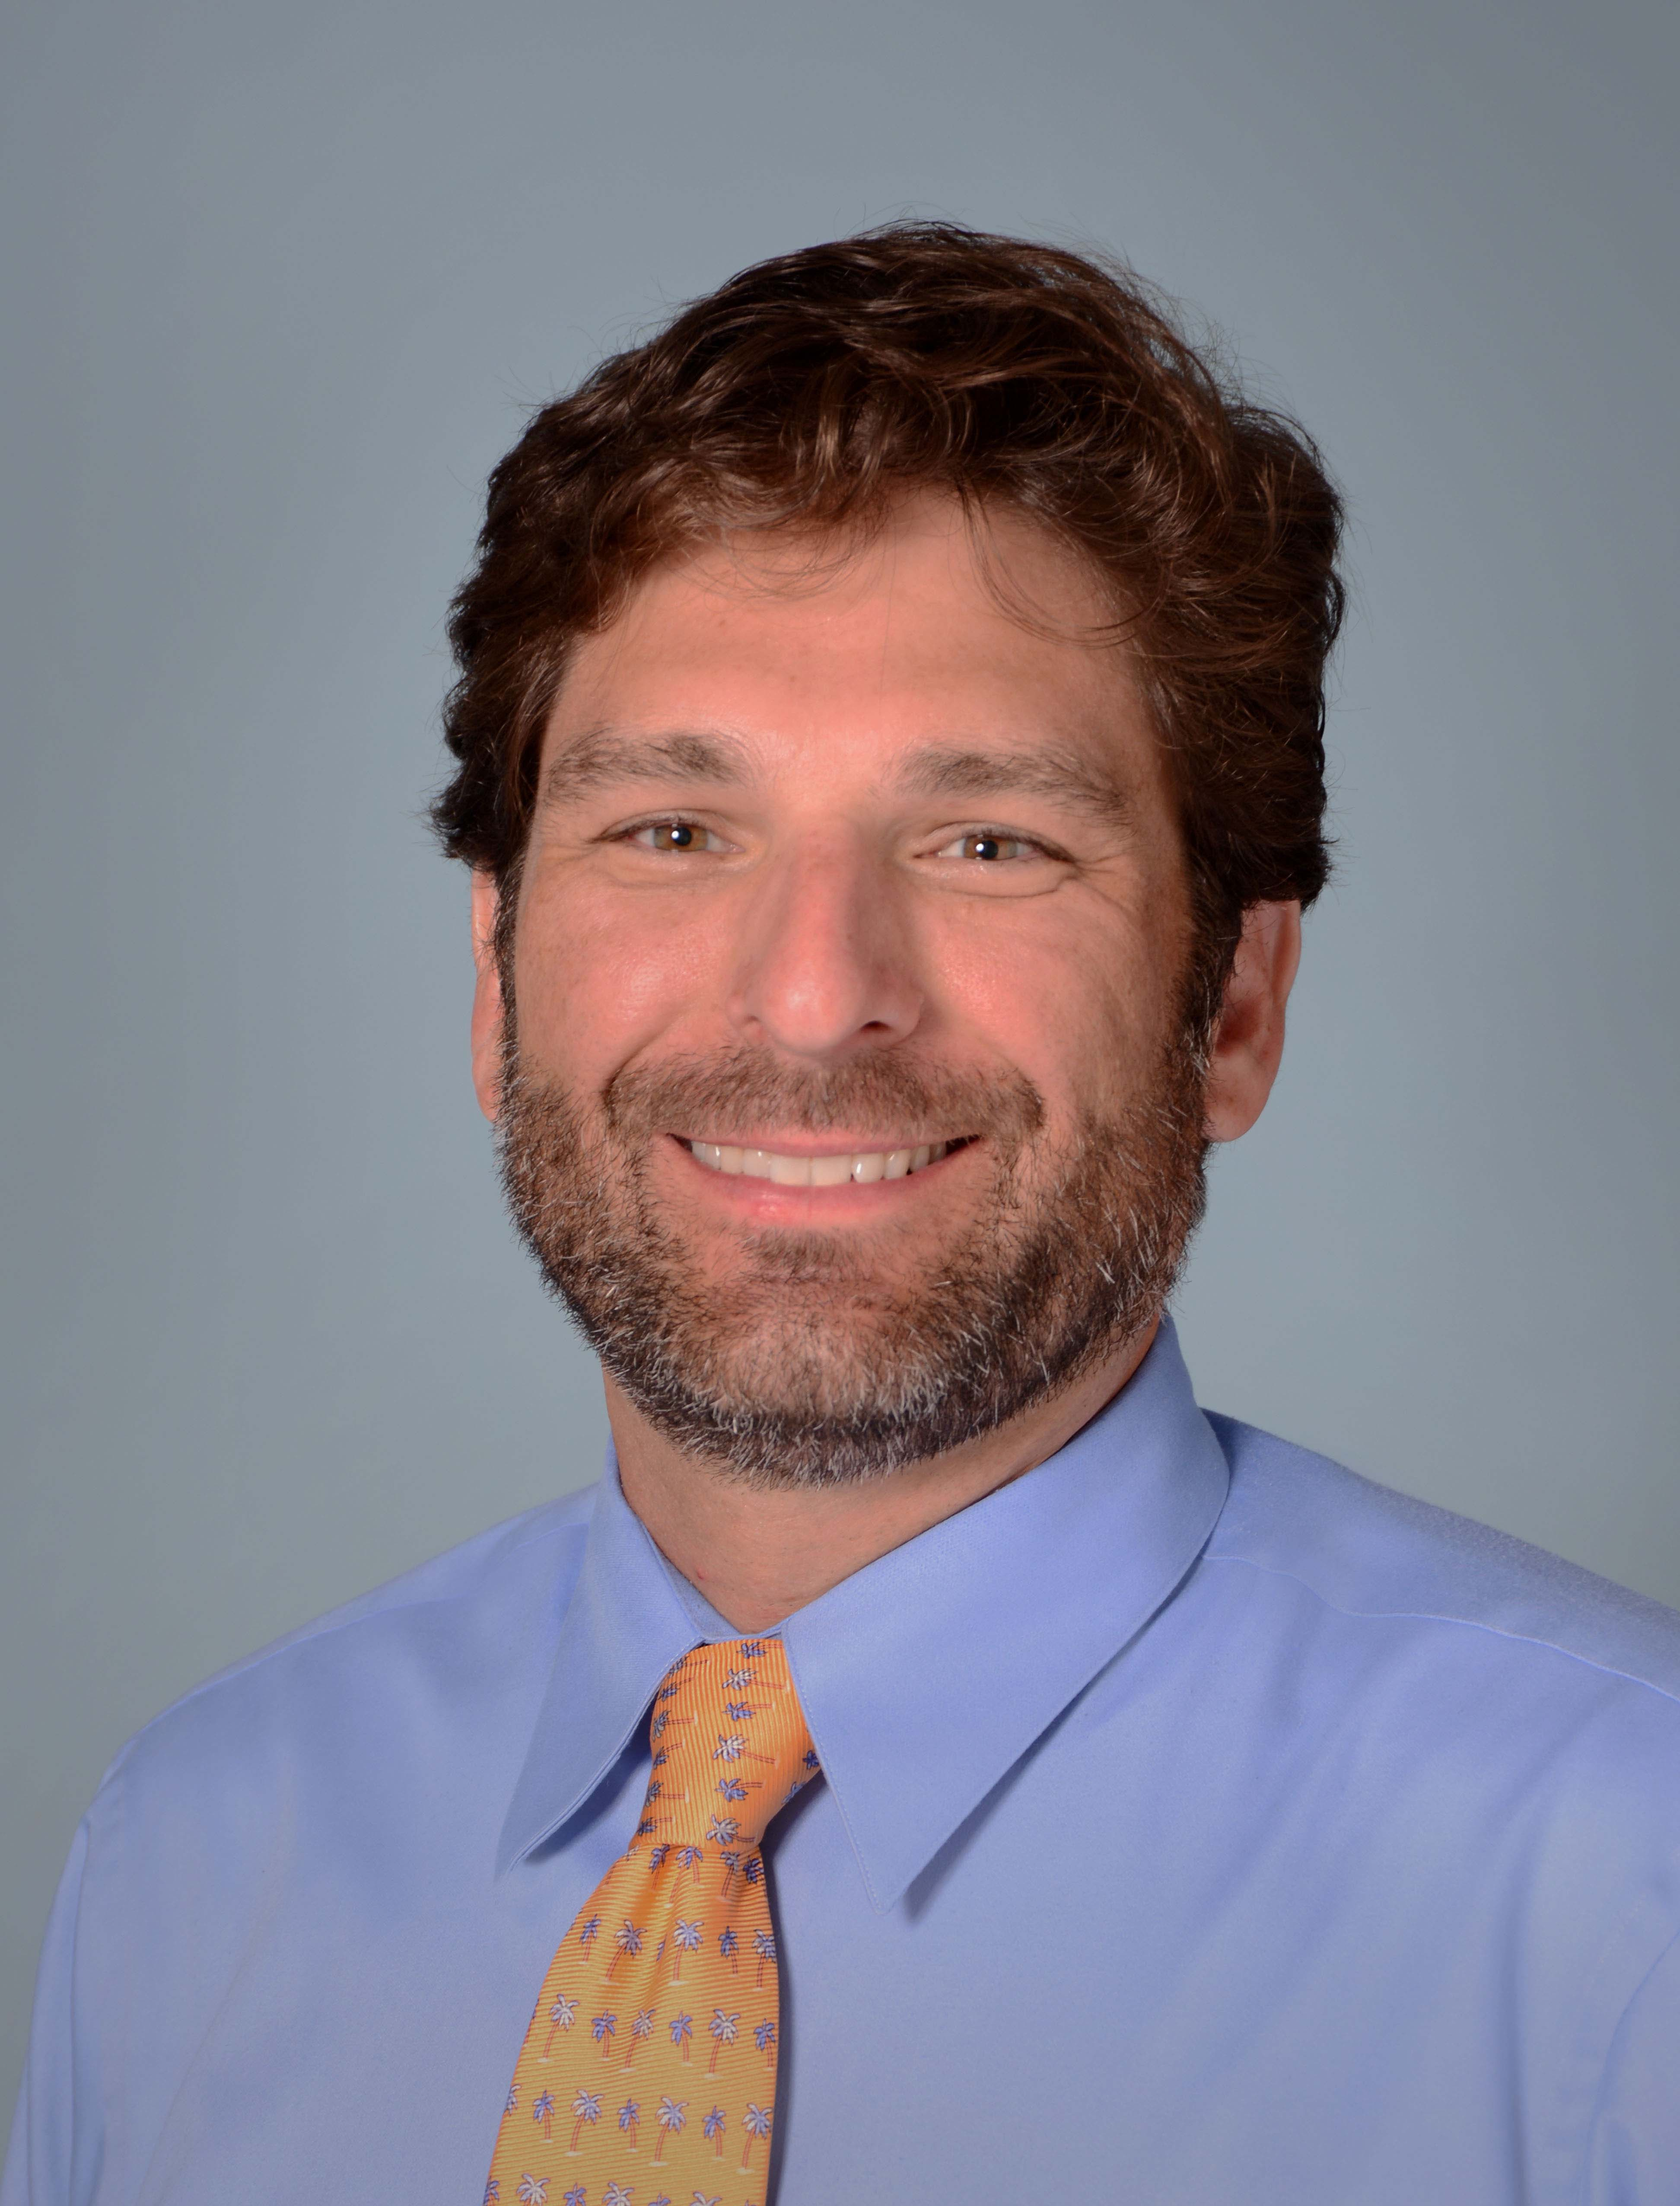 Dr. Grant Newman, MD